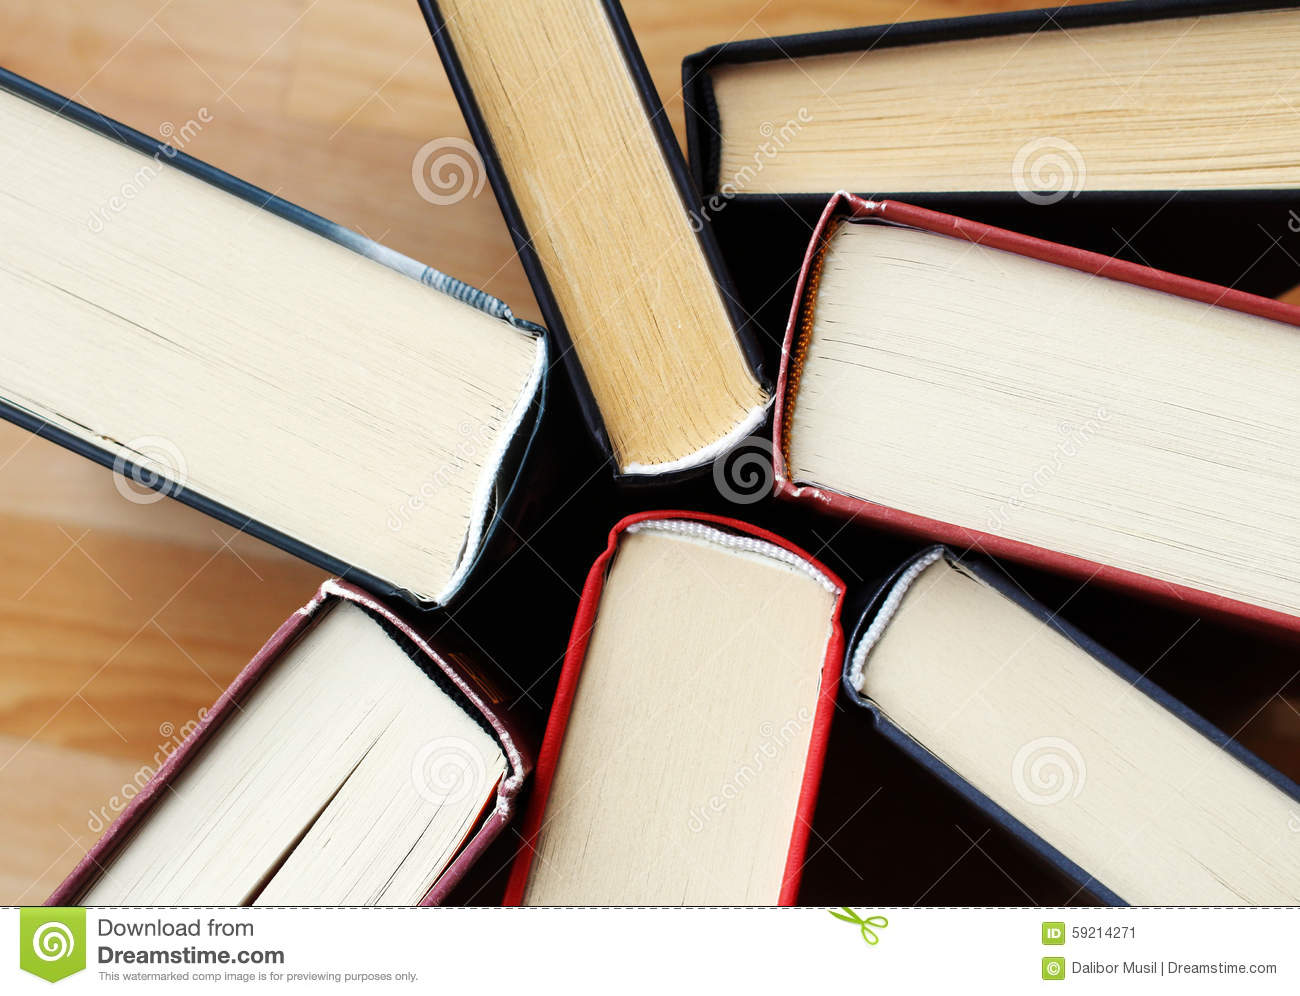 Collection of old literature books from library